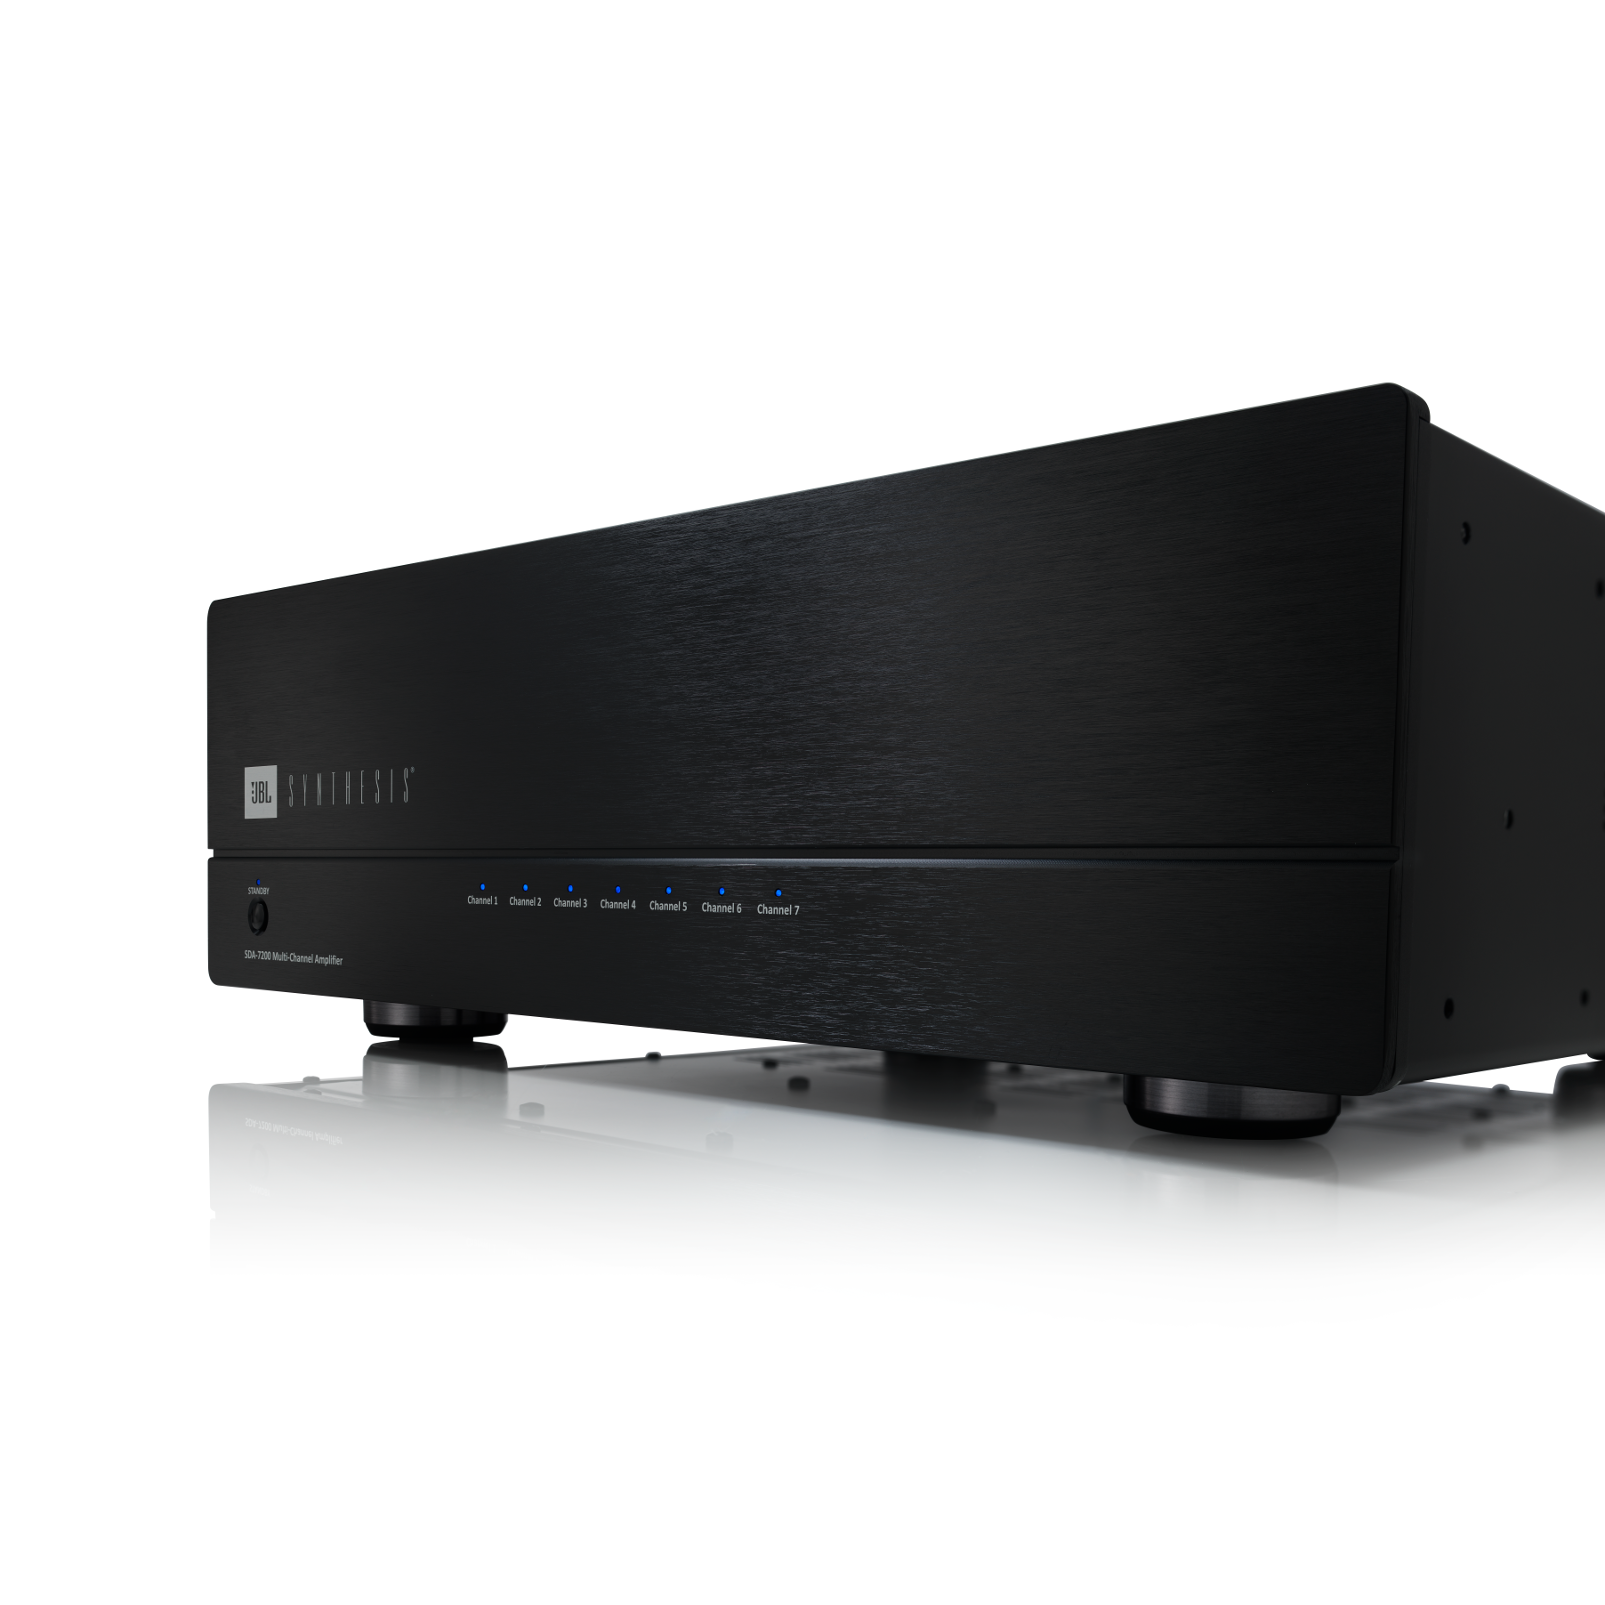 SDA 7200 - Black Lacquer - Multichannel Power Amplifier - Detailshot 1